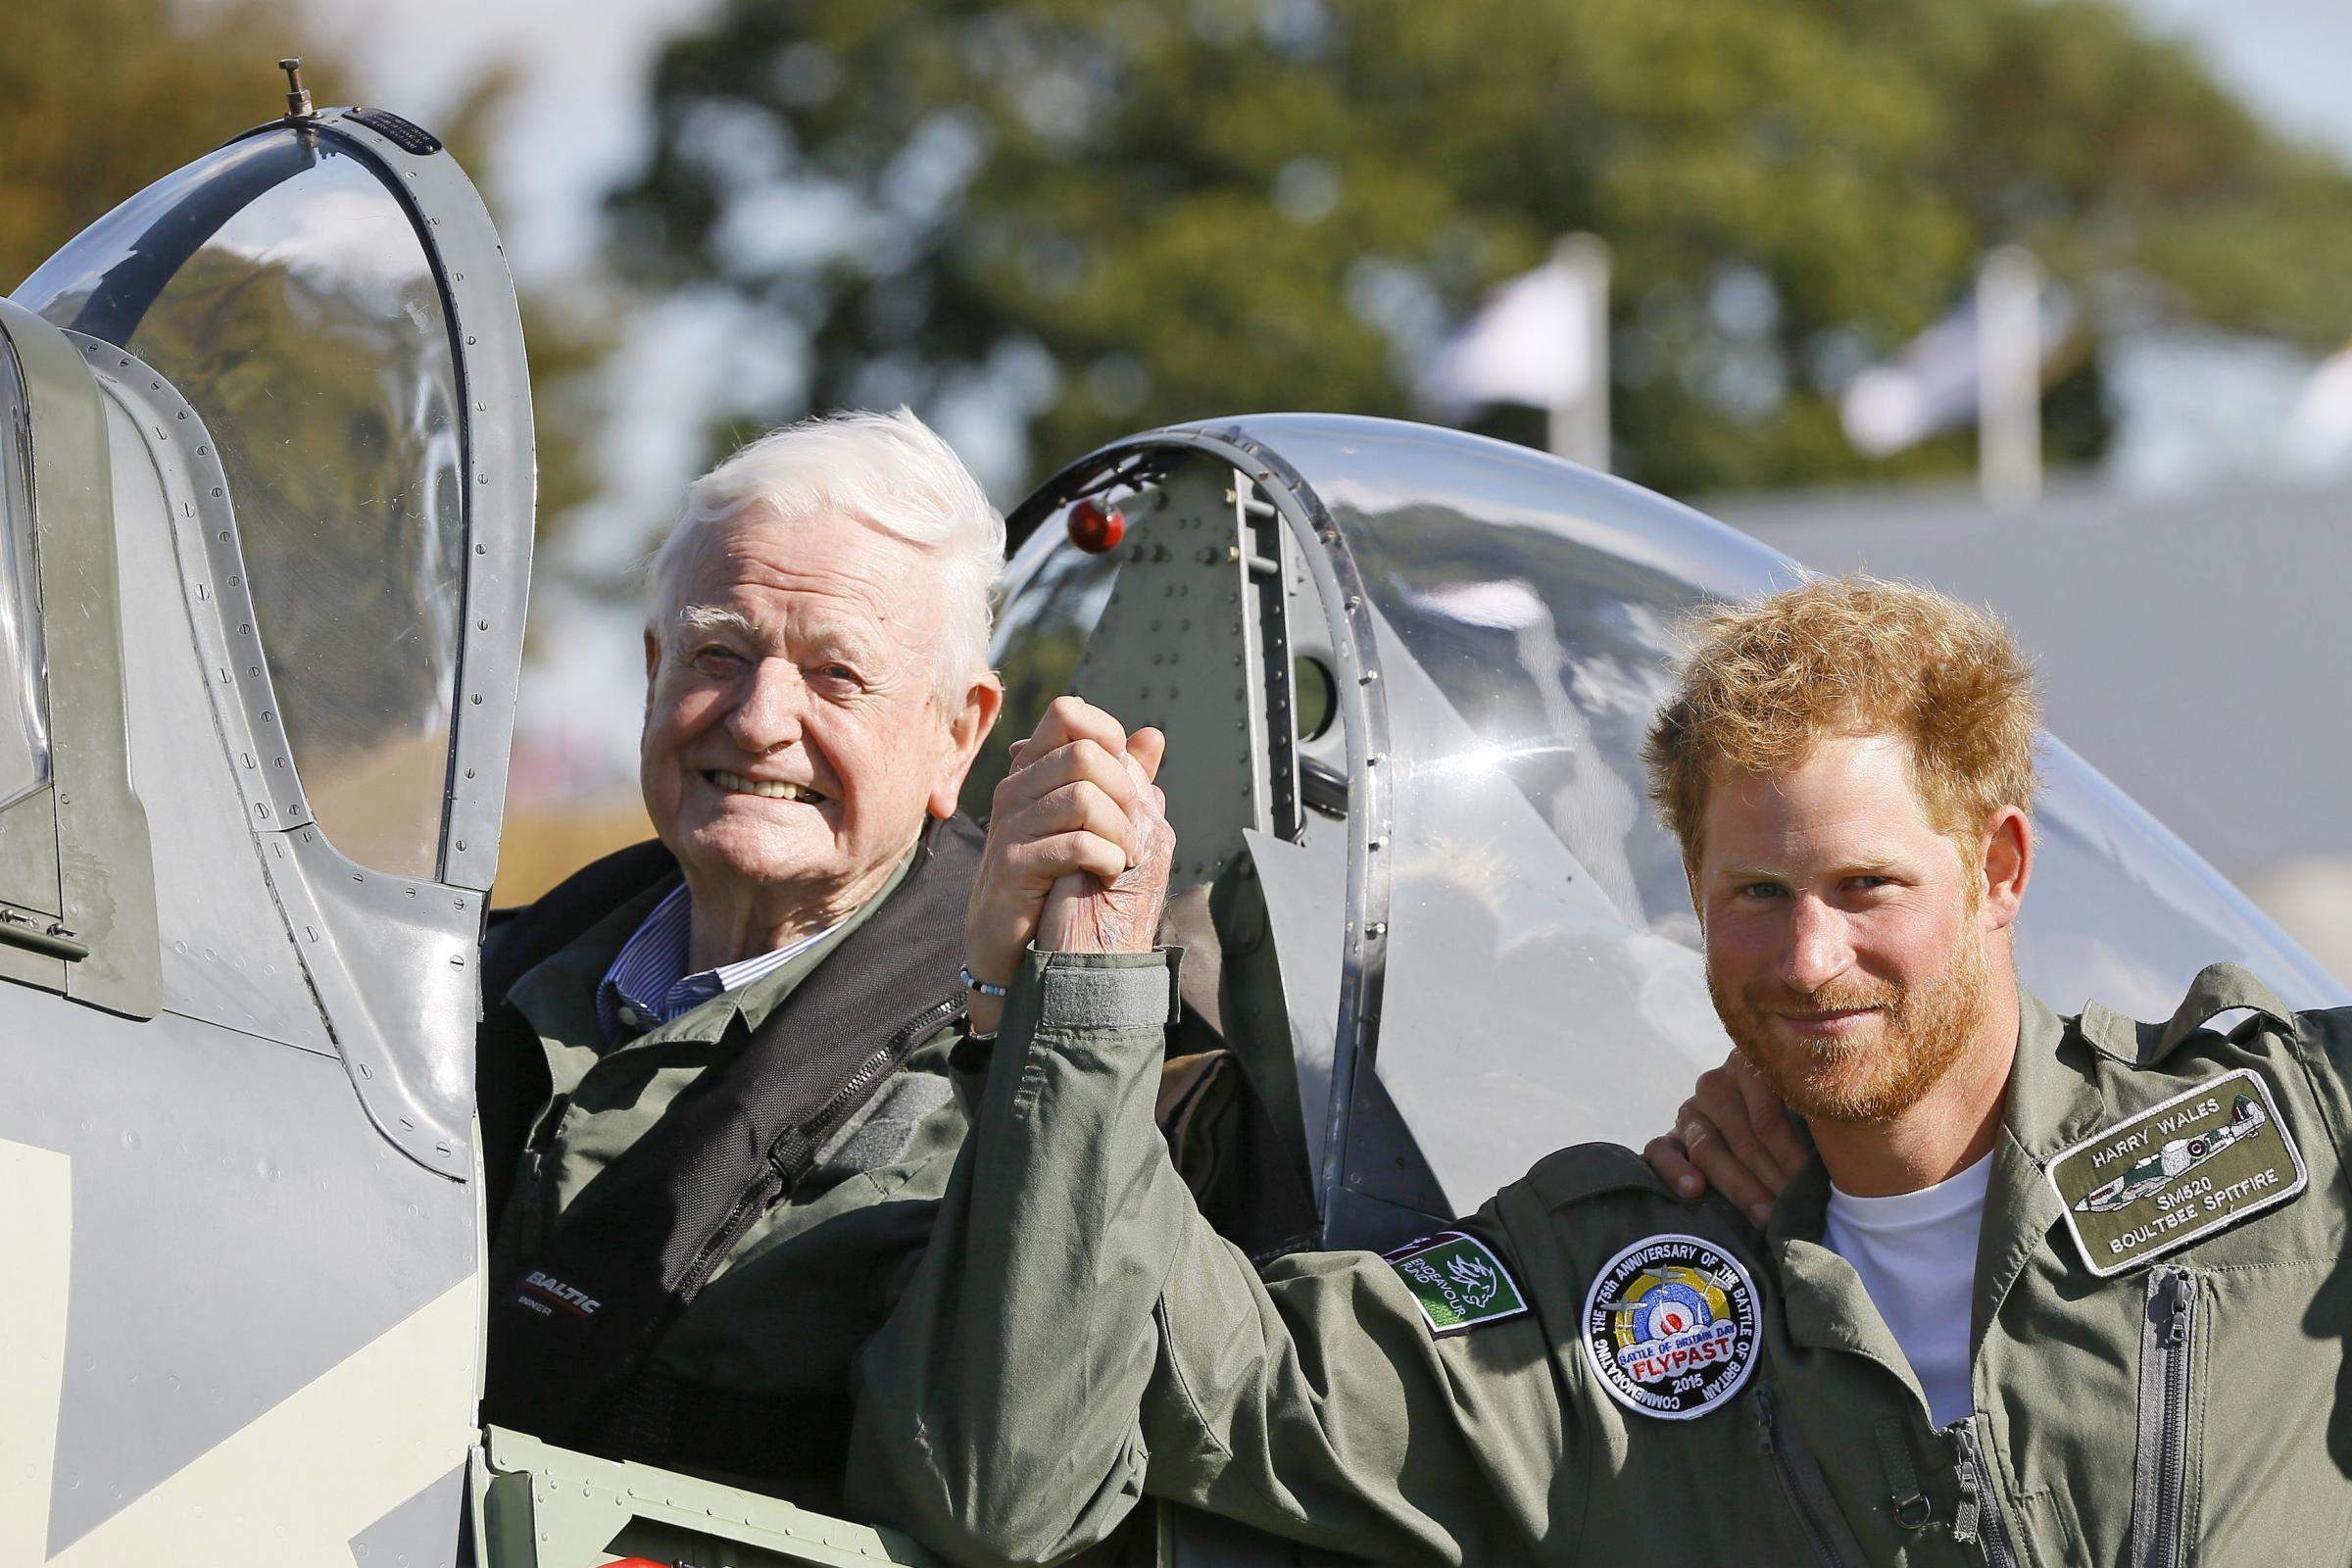 Wing Commander Tom Neil, who has died aged 97, meeting Prince Harry during Battle of Britain commemorations